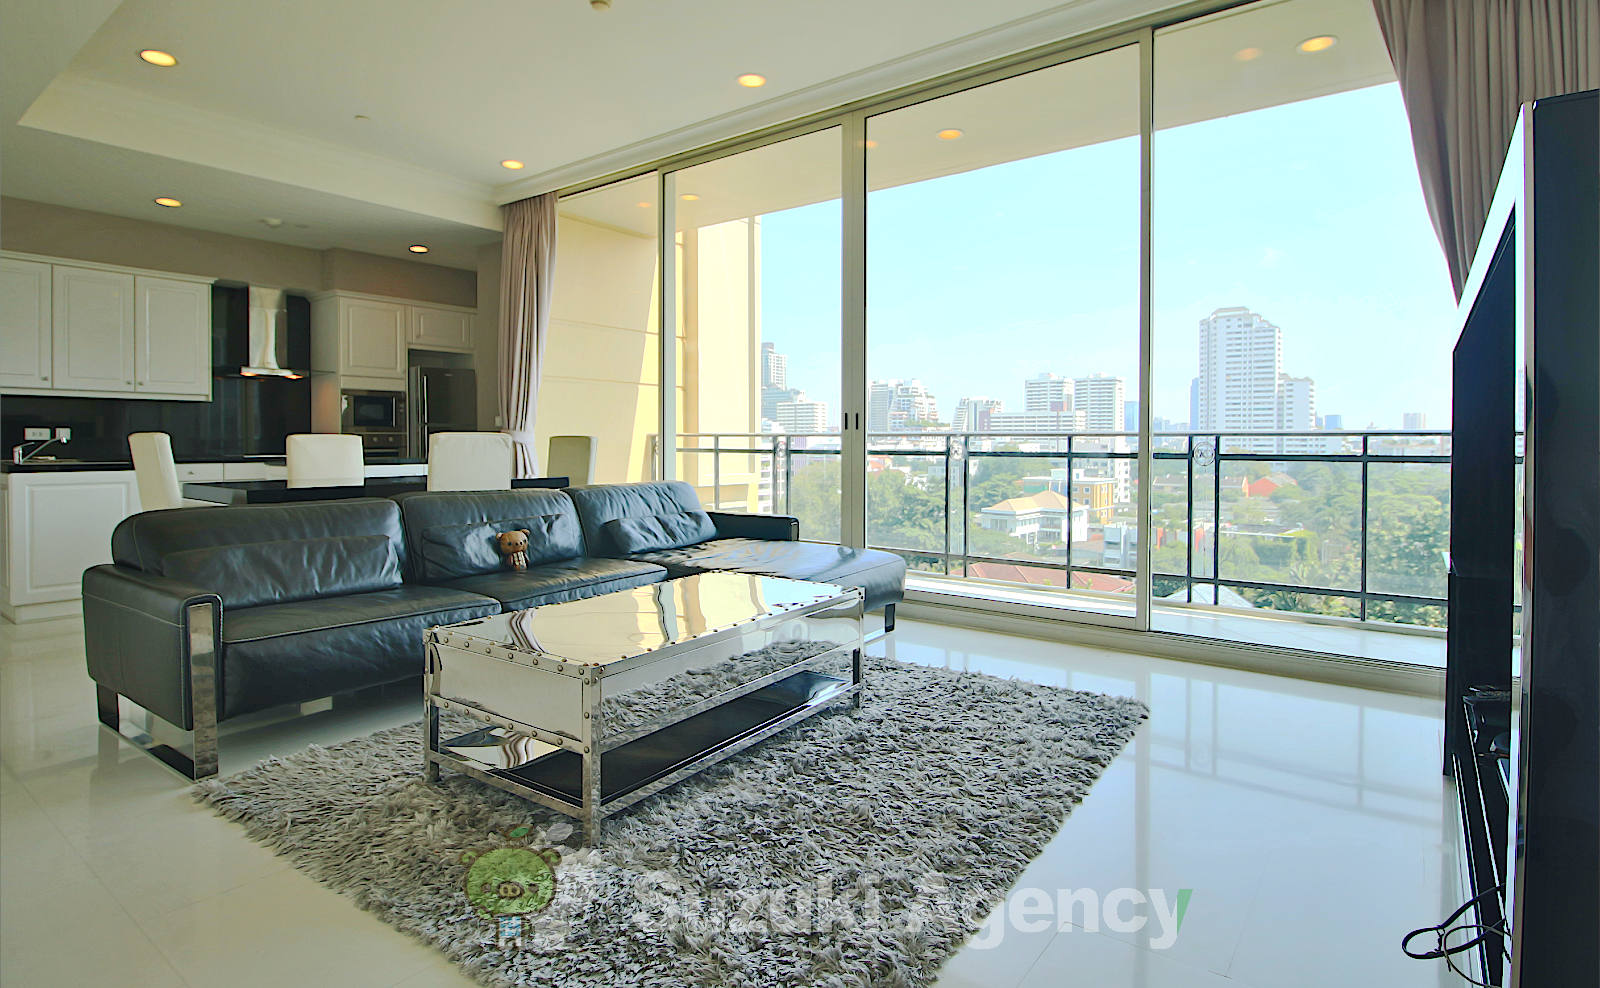 Royce Private Residences (Owner No.91831):2Bed Room Photos No.1